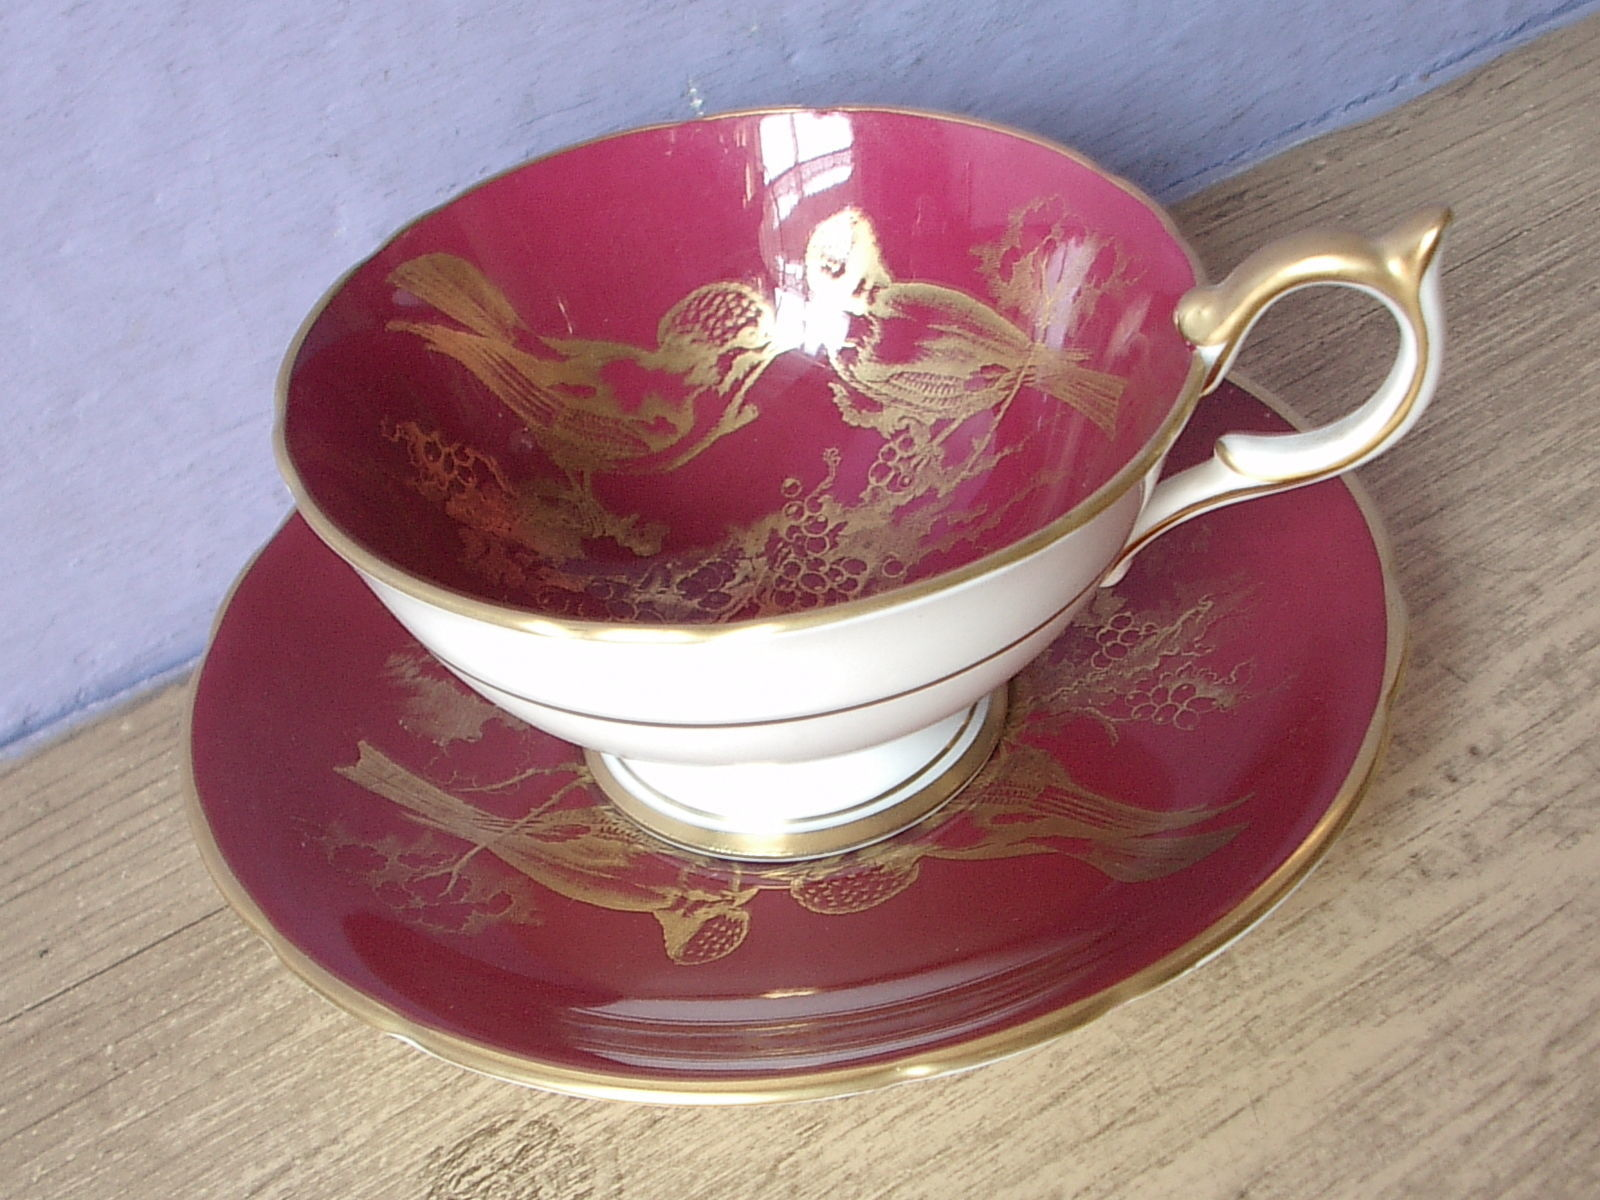 RARE Vintage 1950's Aynsley English bone china red and gold birds tea cup teacup image 3